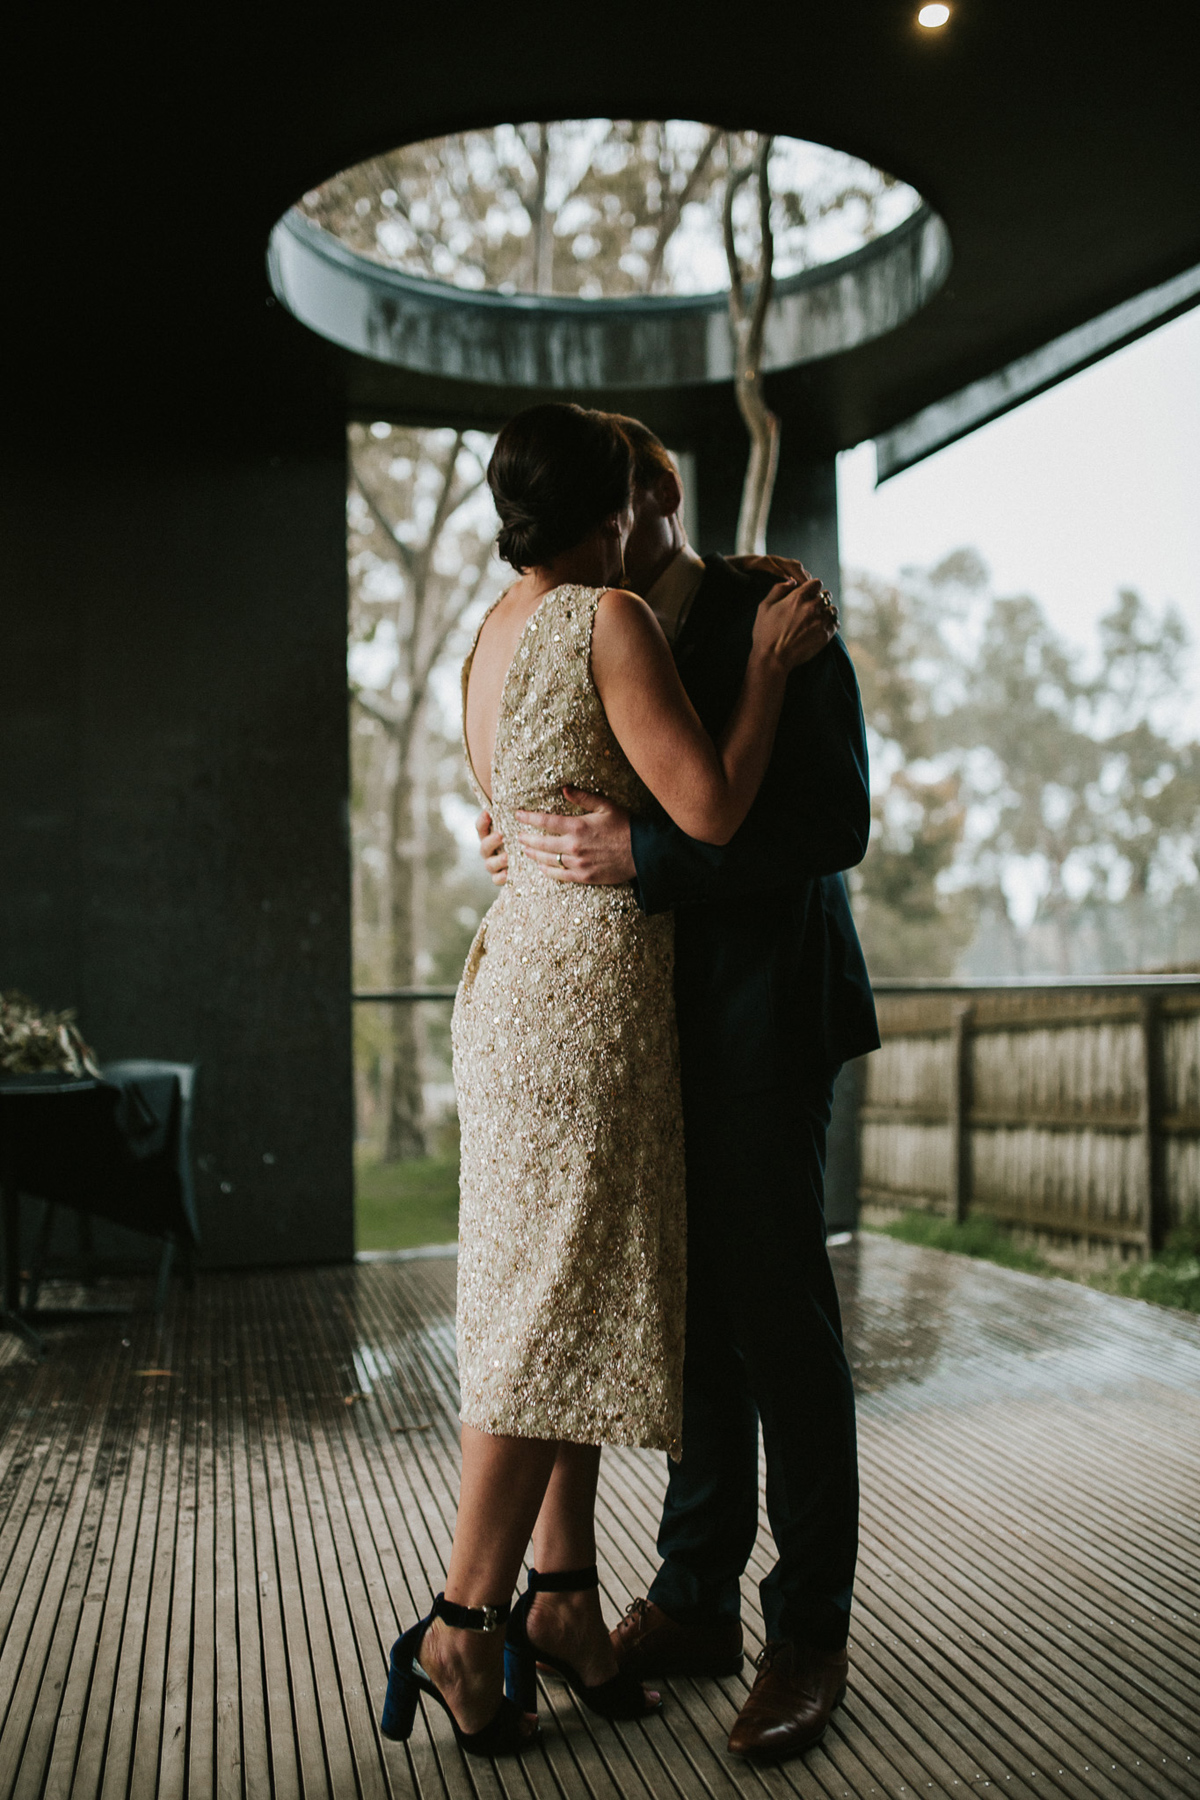 Em&Steve_HeideMuseum_Garden-Fun-Modern-Wedding_Melbourne-Wedding-Photographer_21